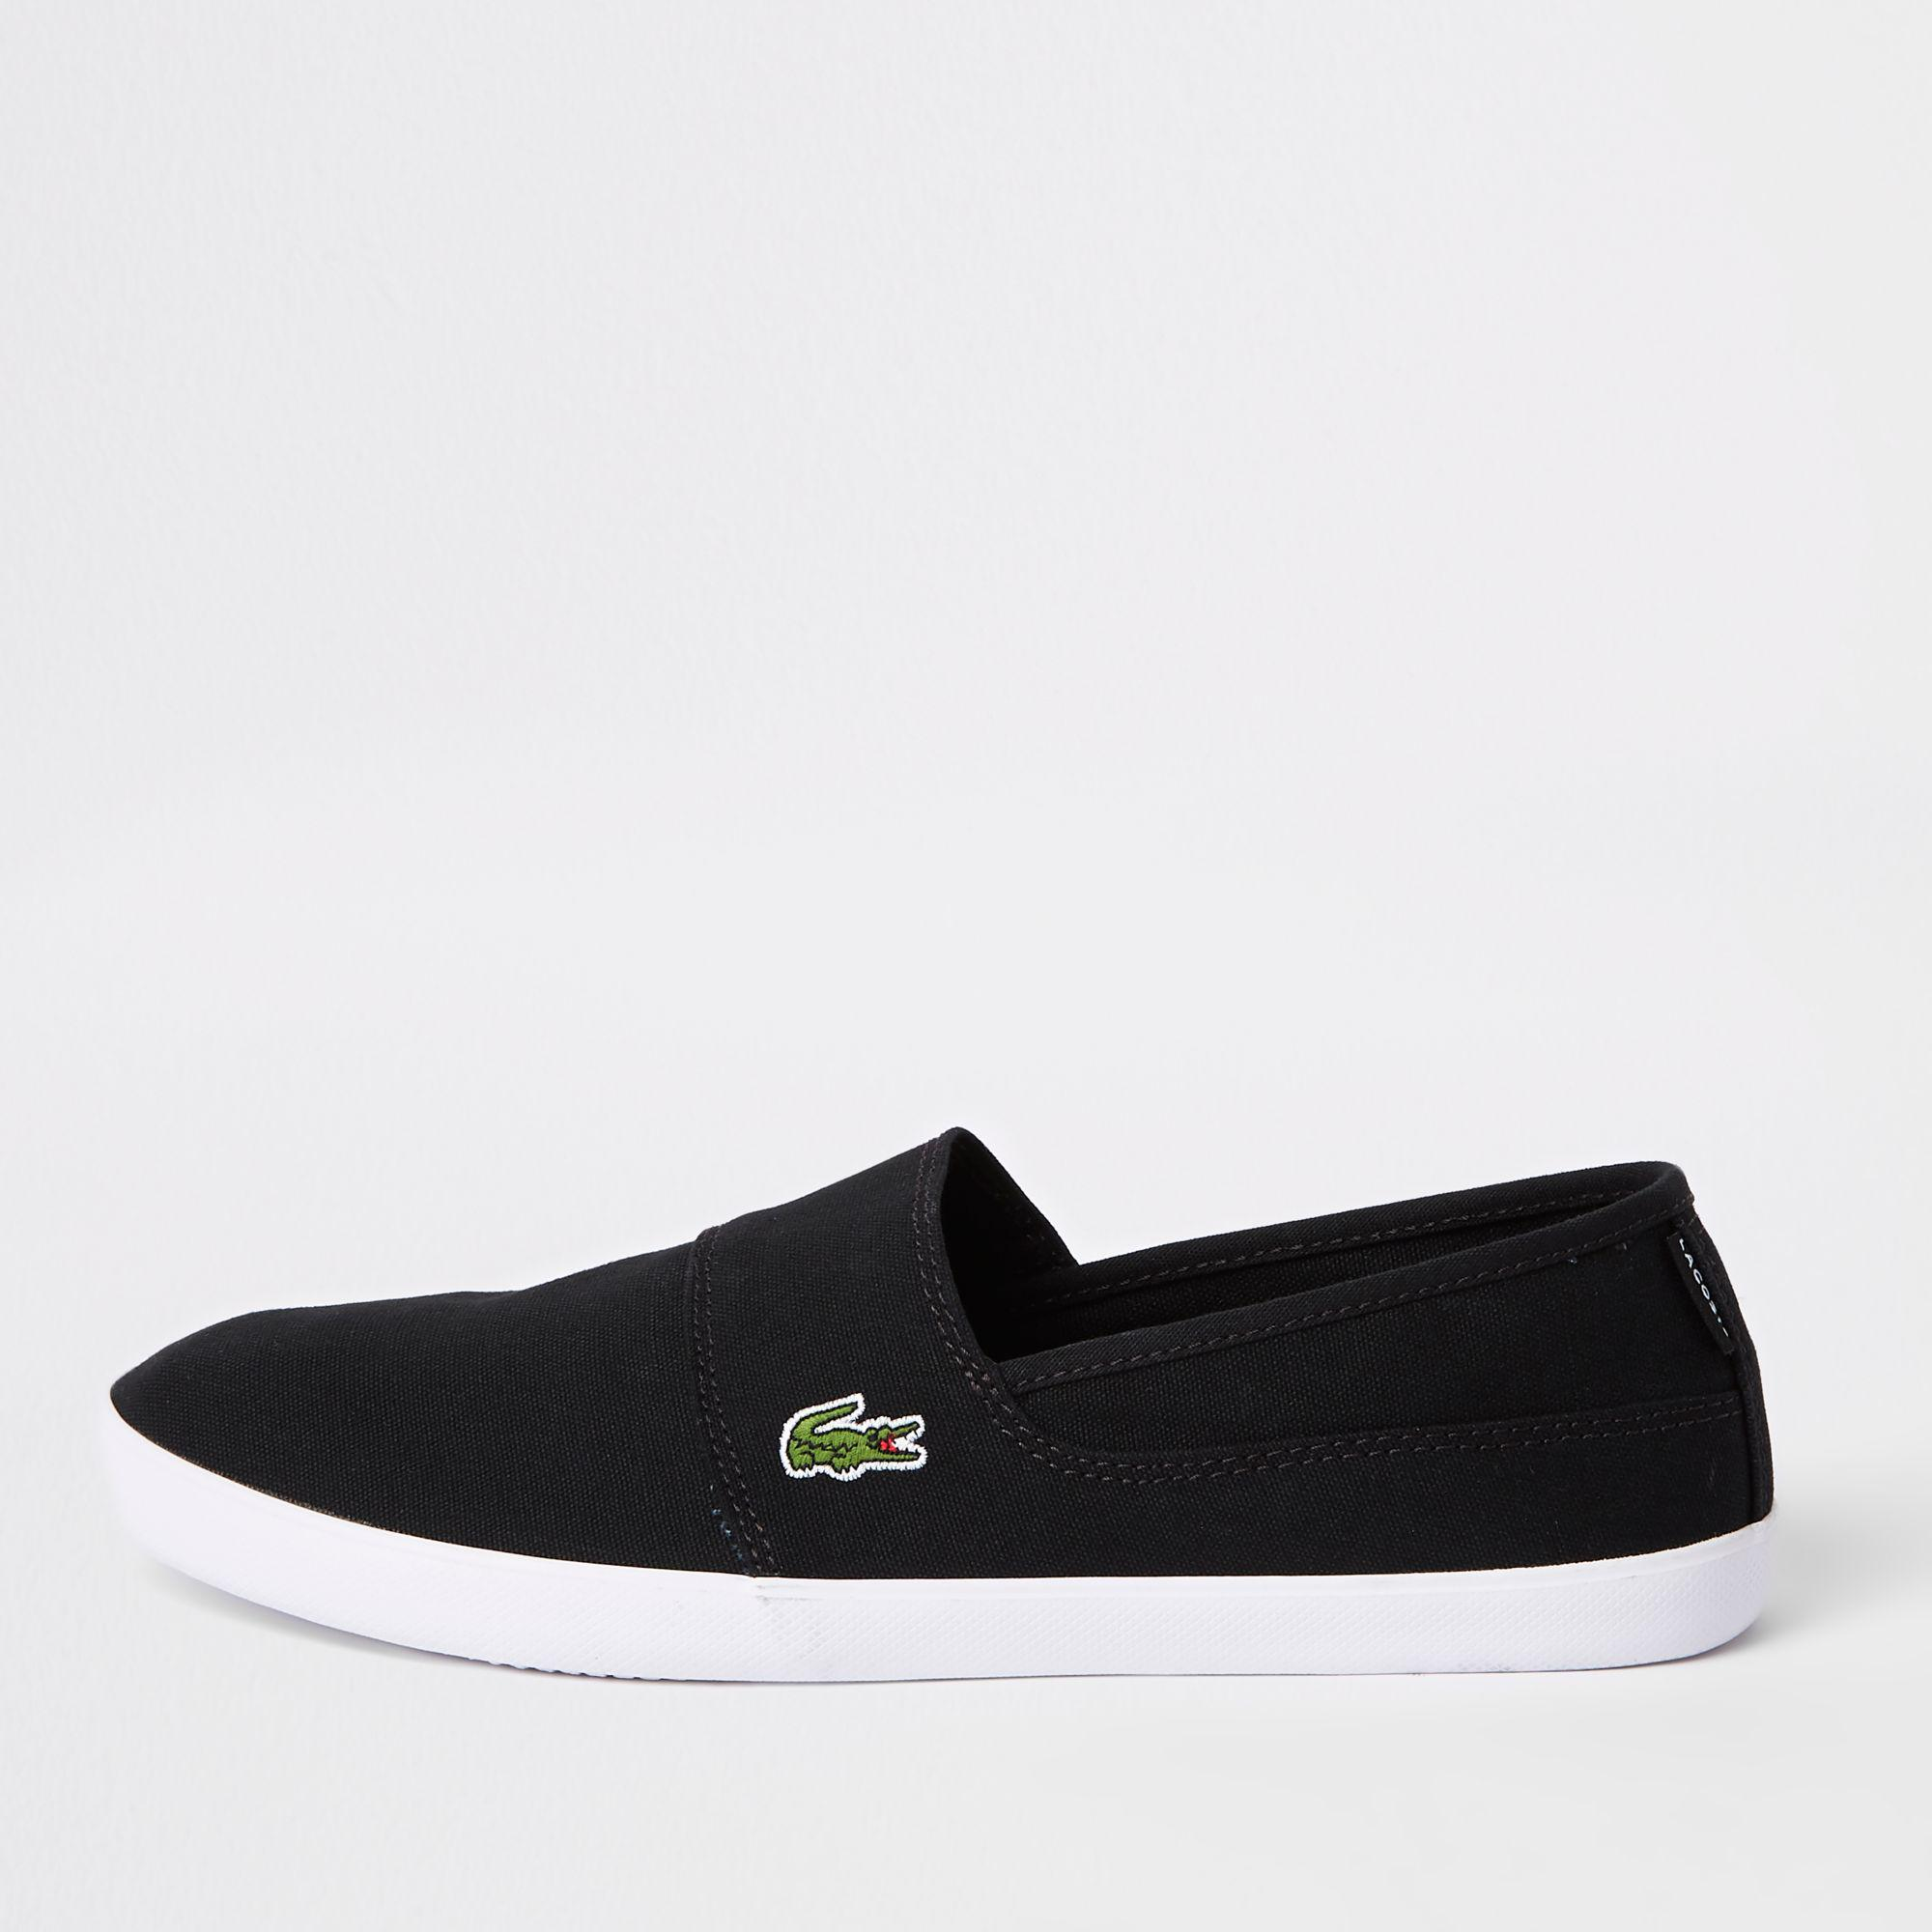 a63cc2a11 Lyst - Lacoste Slip On Trainers in Black for Men